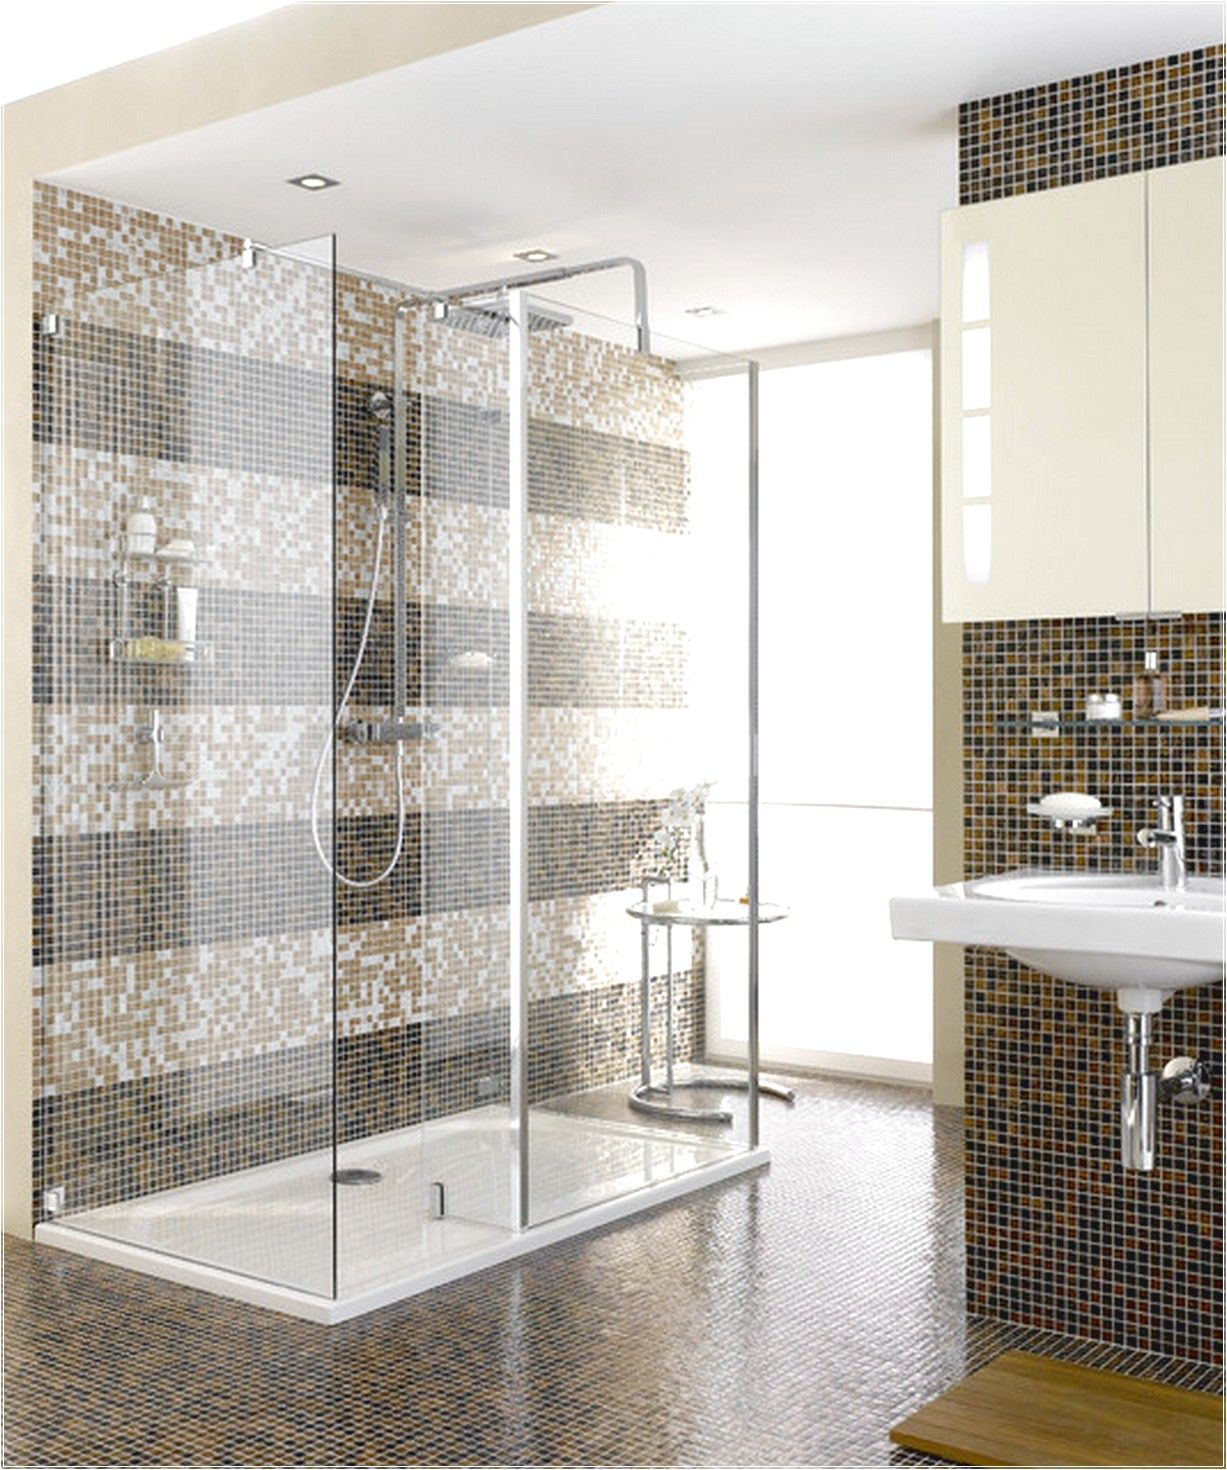 bathroom, : classic bathroom design with glass shower room